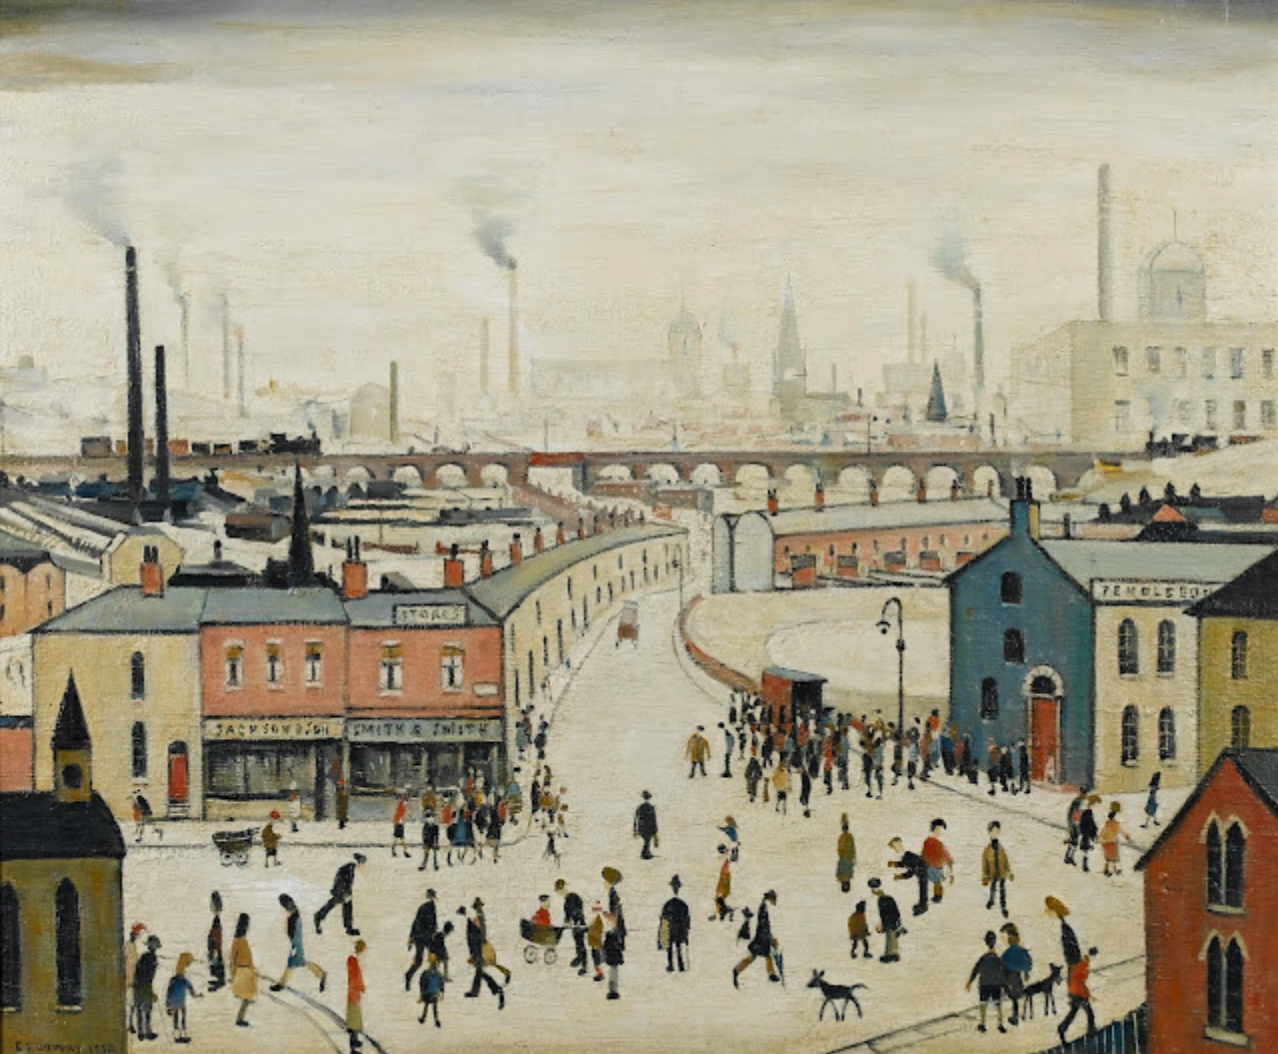 Industrial Landscape (1958) by Laurence Stephen Lowry (1887 - 1976), English artist.